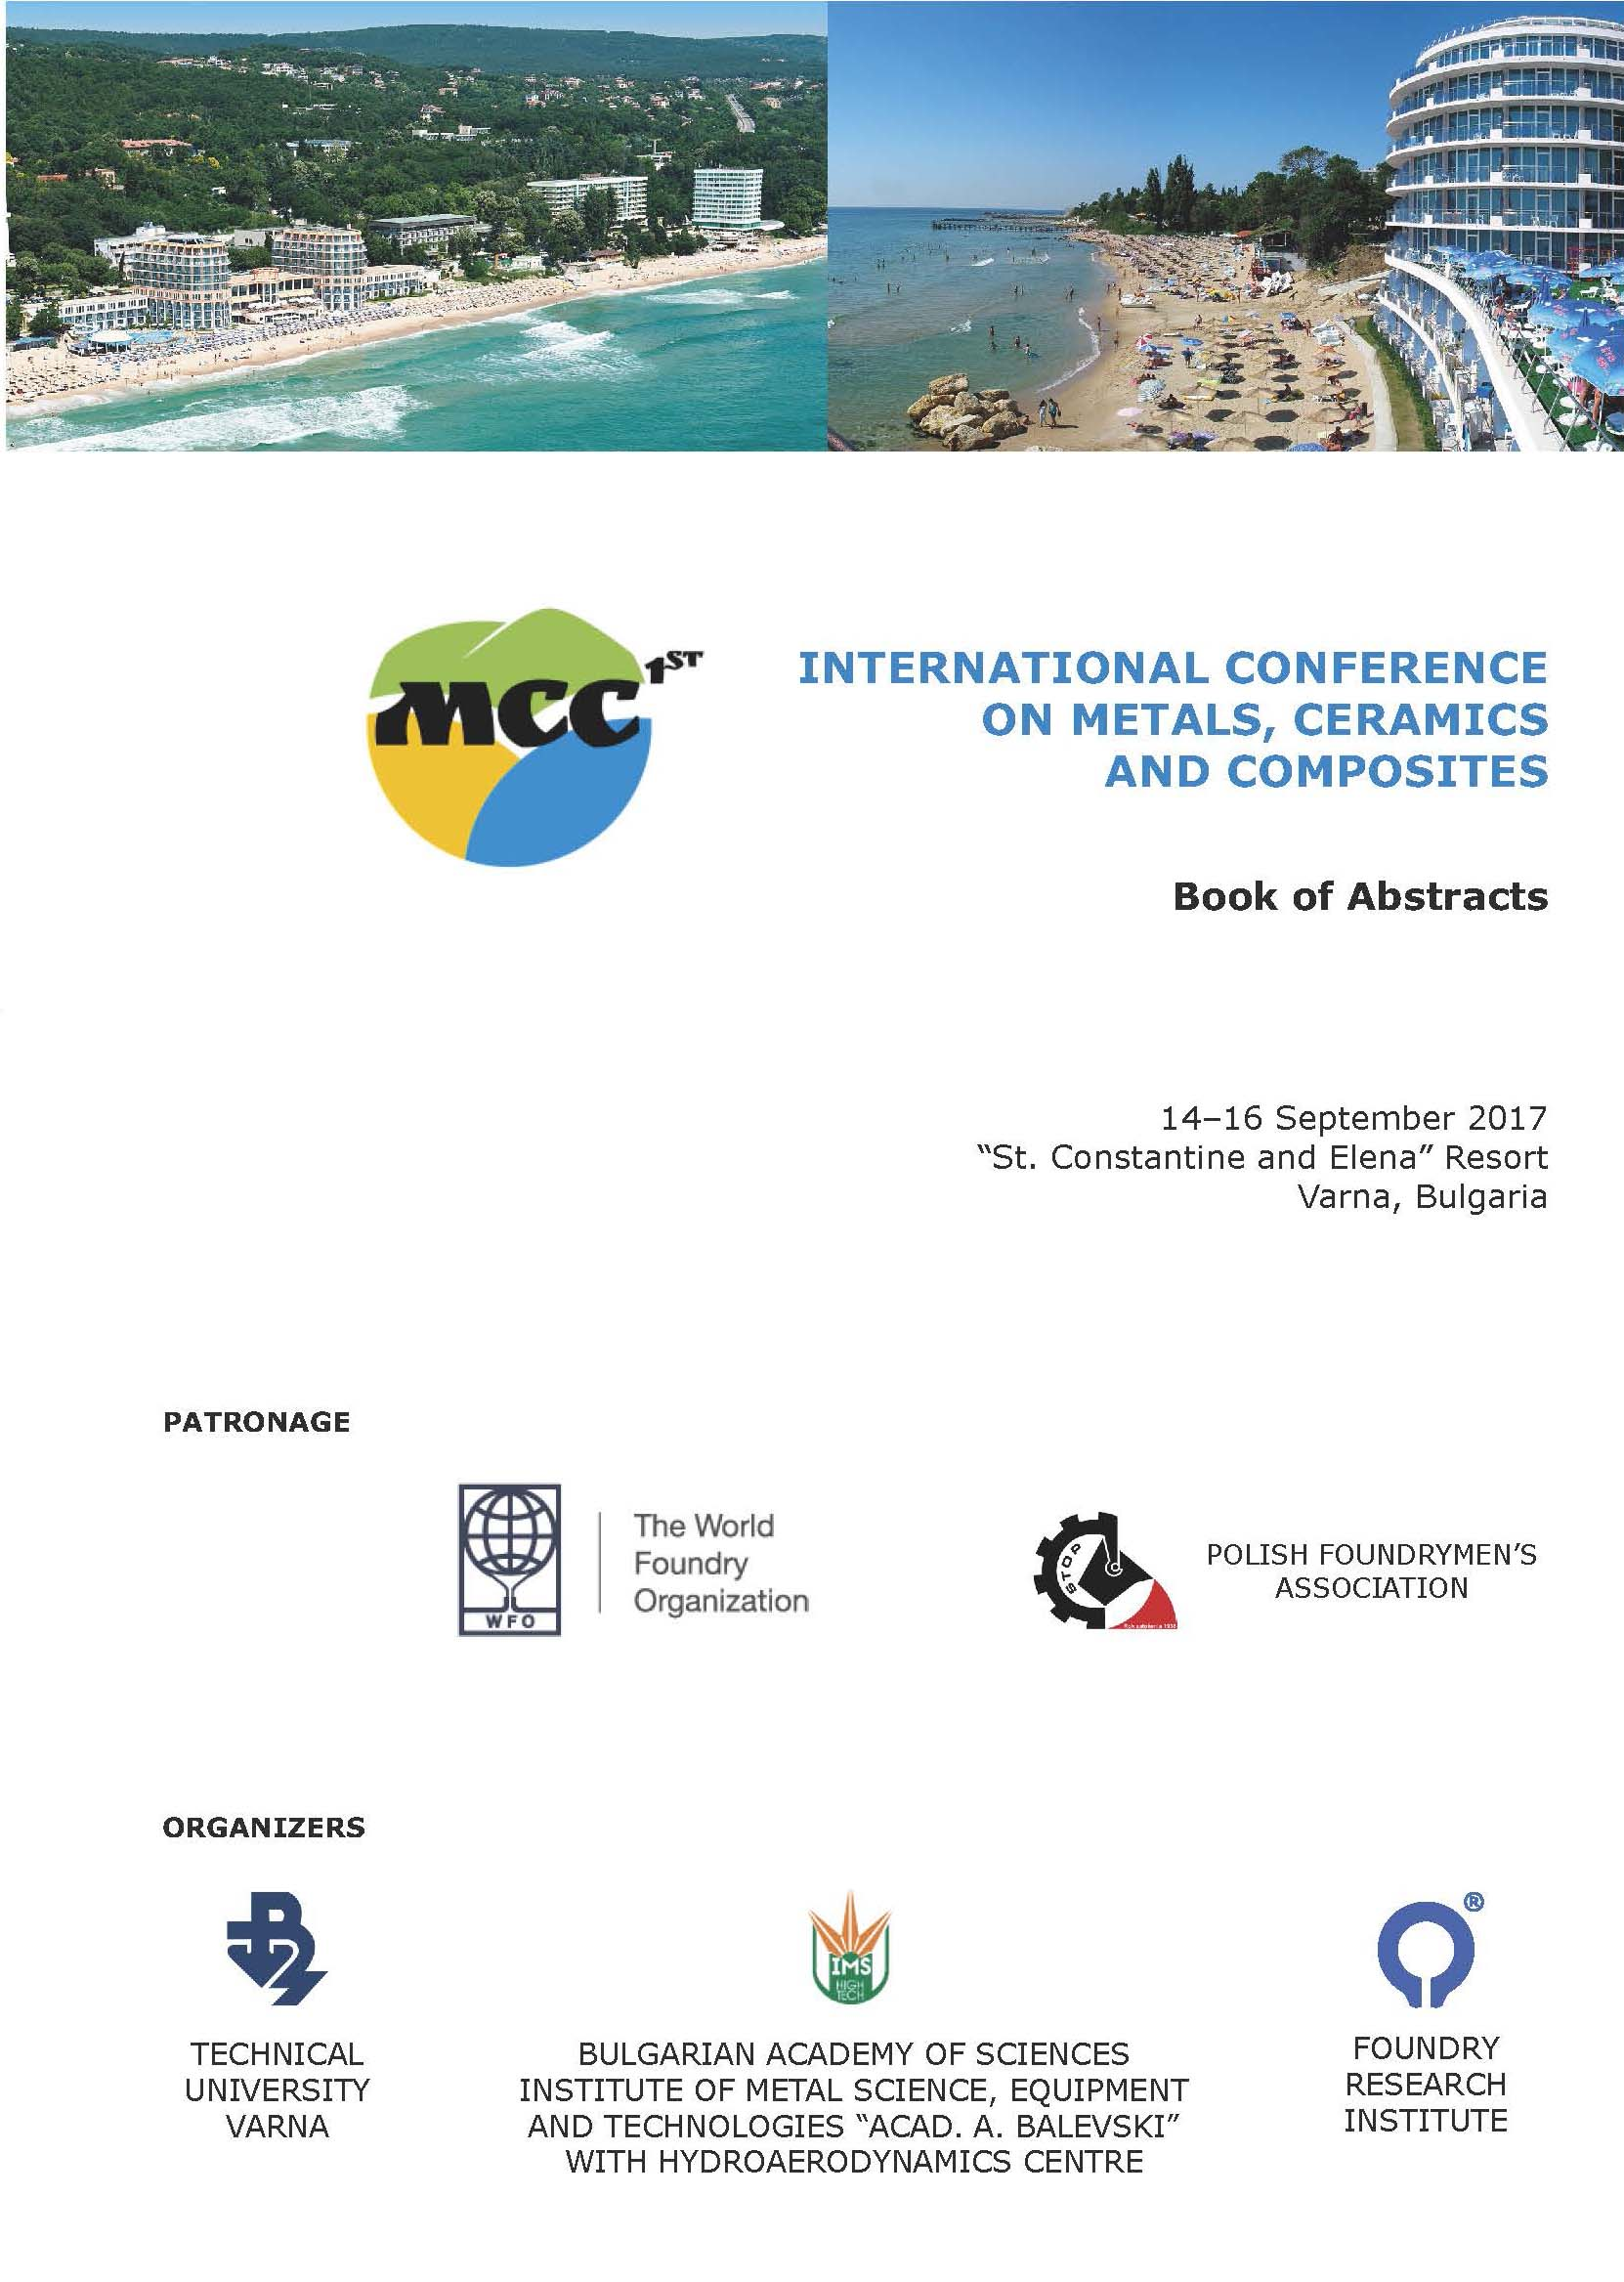 1st International Conference on Metals, Ceramics and Composites. Book of Abstracts